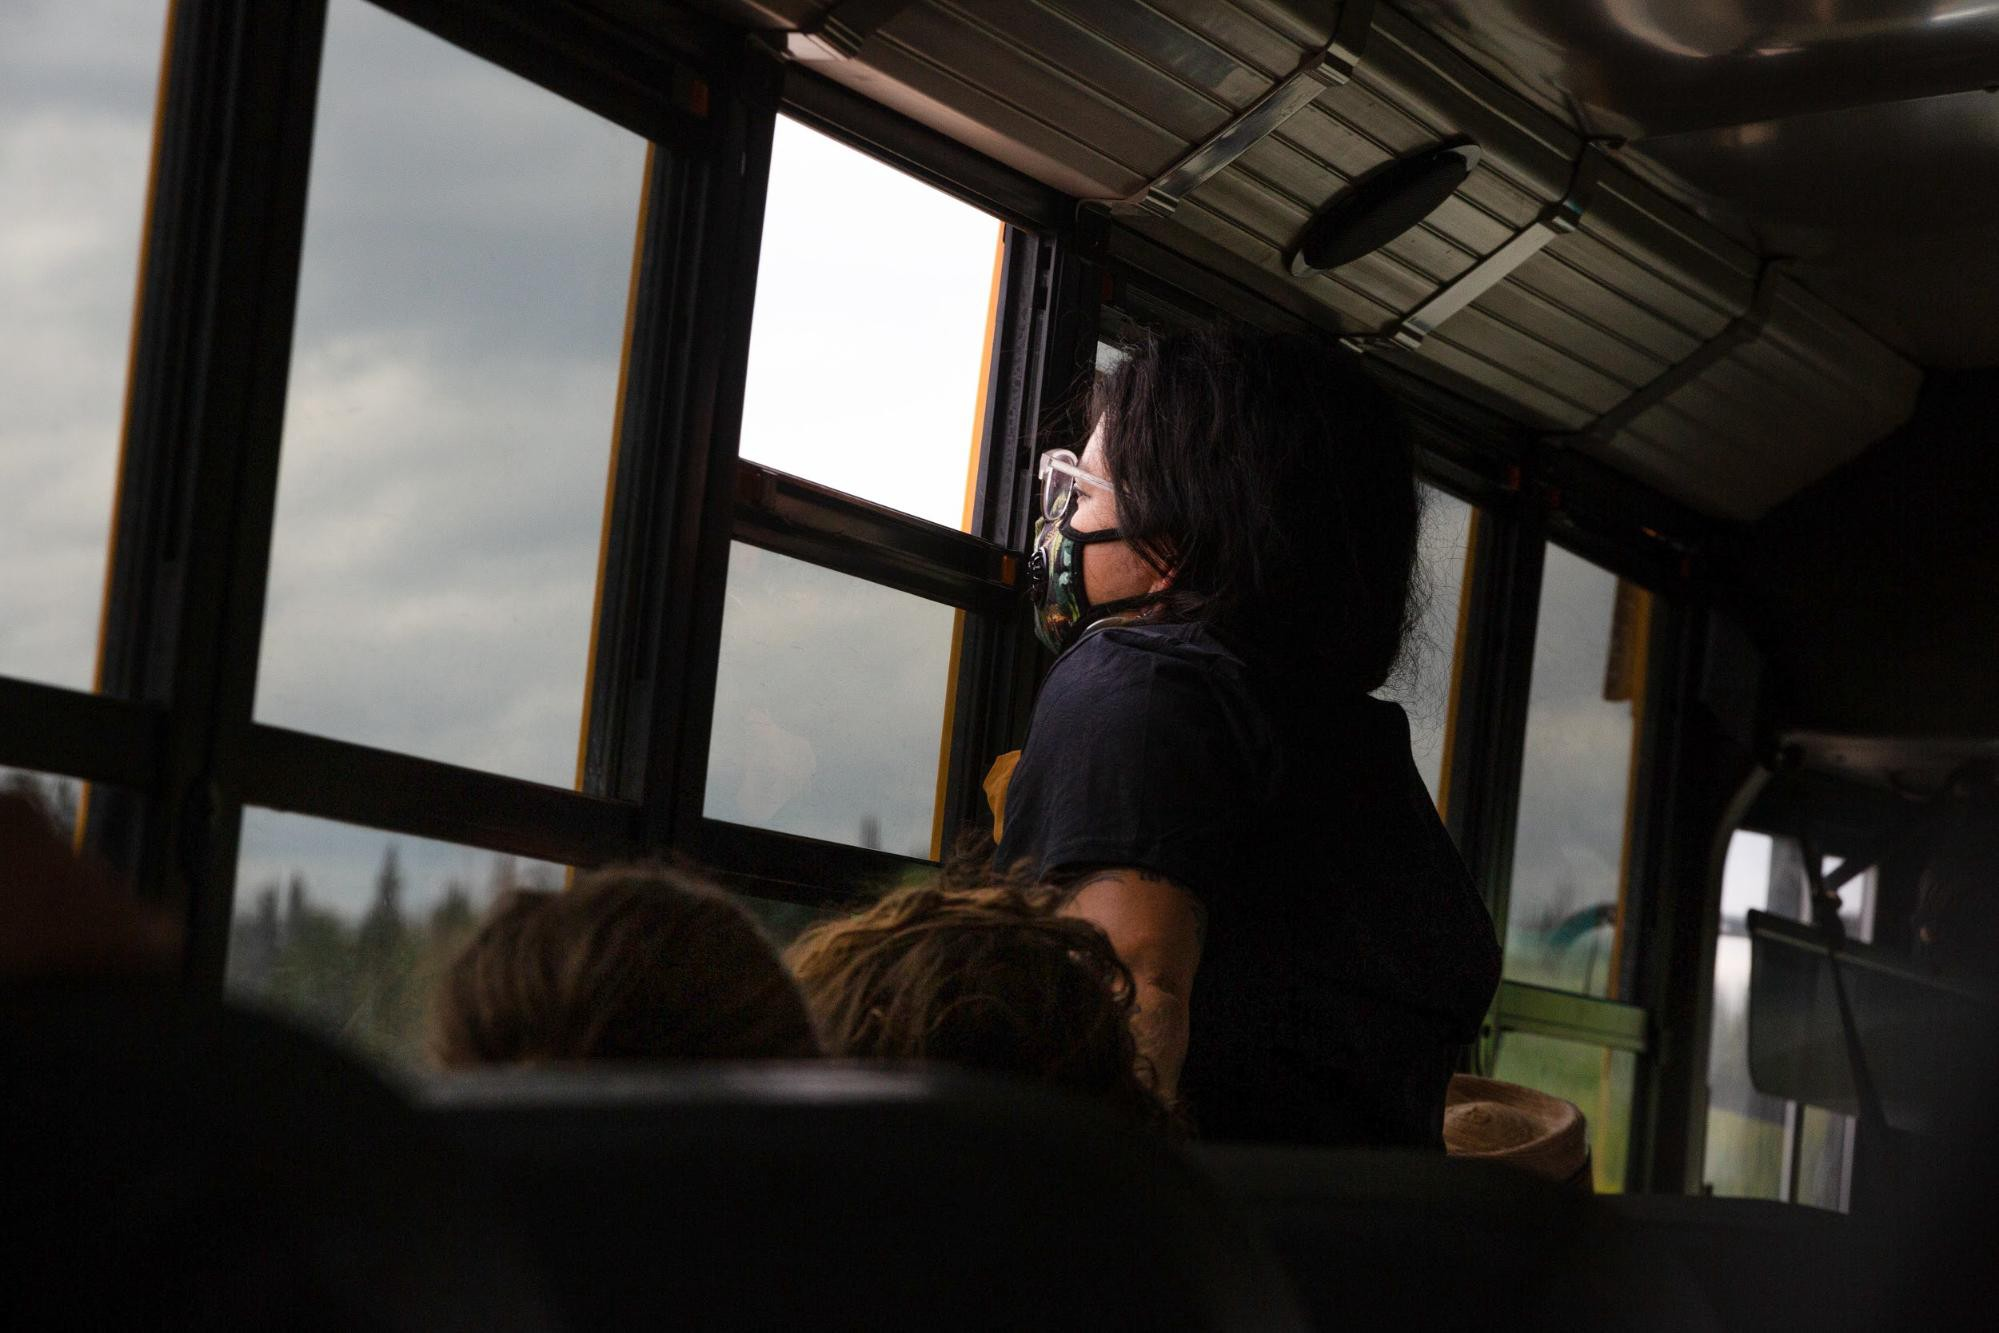 V Guzman looks outside at a Syncrude refinery with a mask against the foul odors from the local tar sands mining facilities.